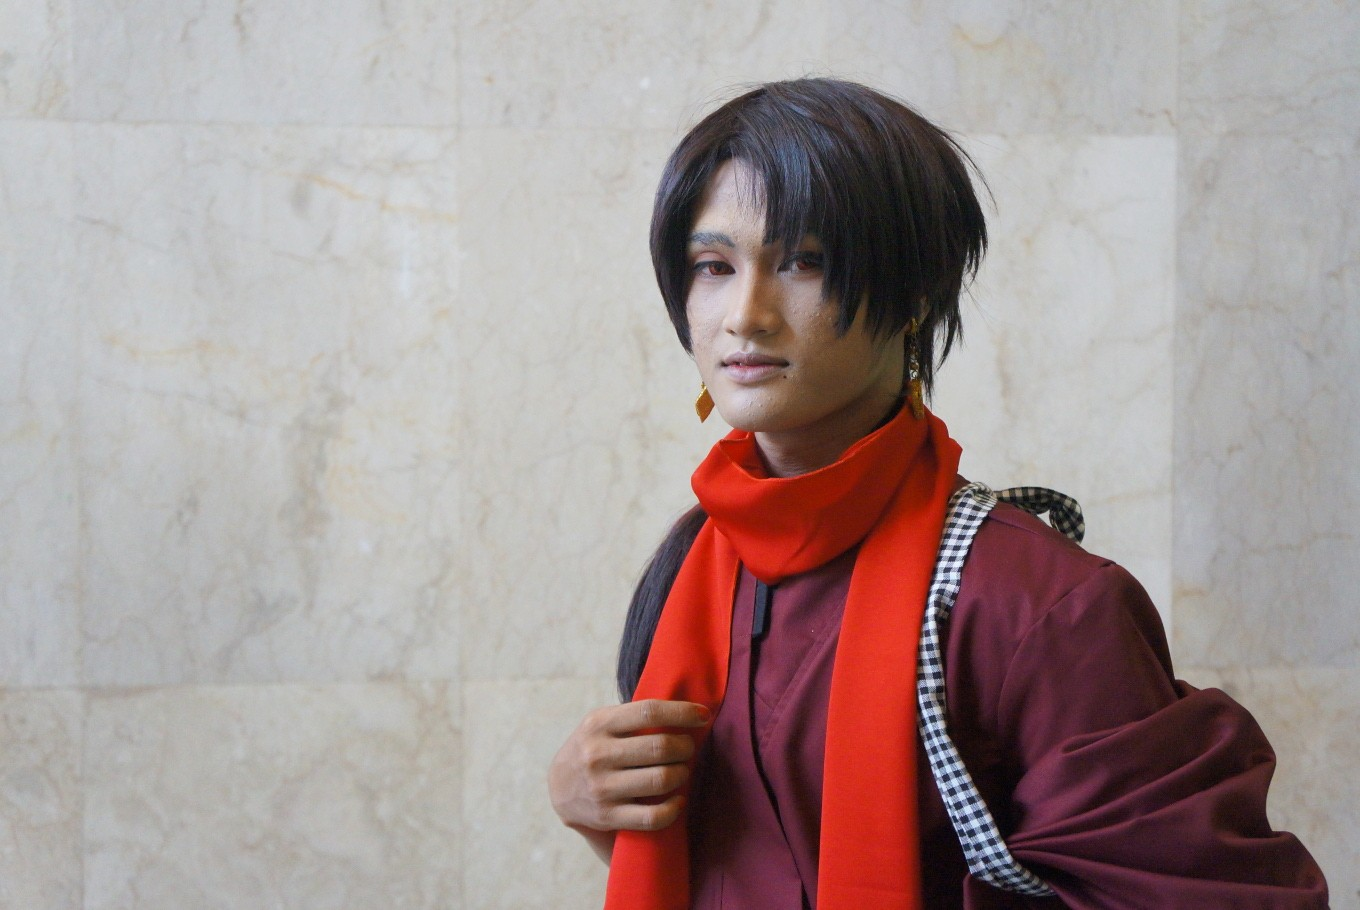 A cosplayer poses as Kashuu Kiyomitsu, a character from the video game 'Touken Ranbu.'